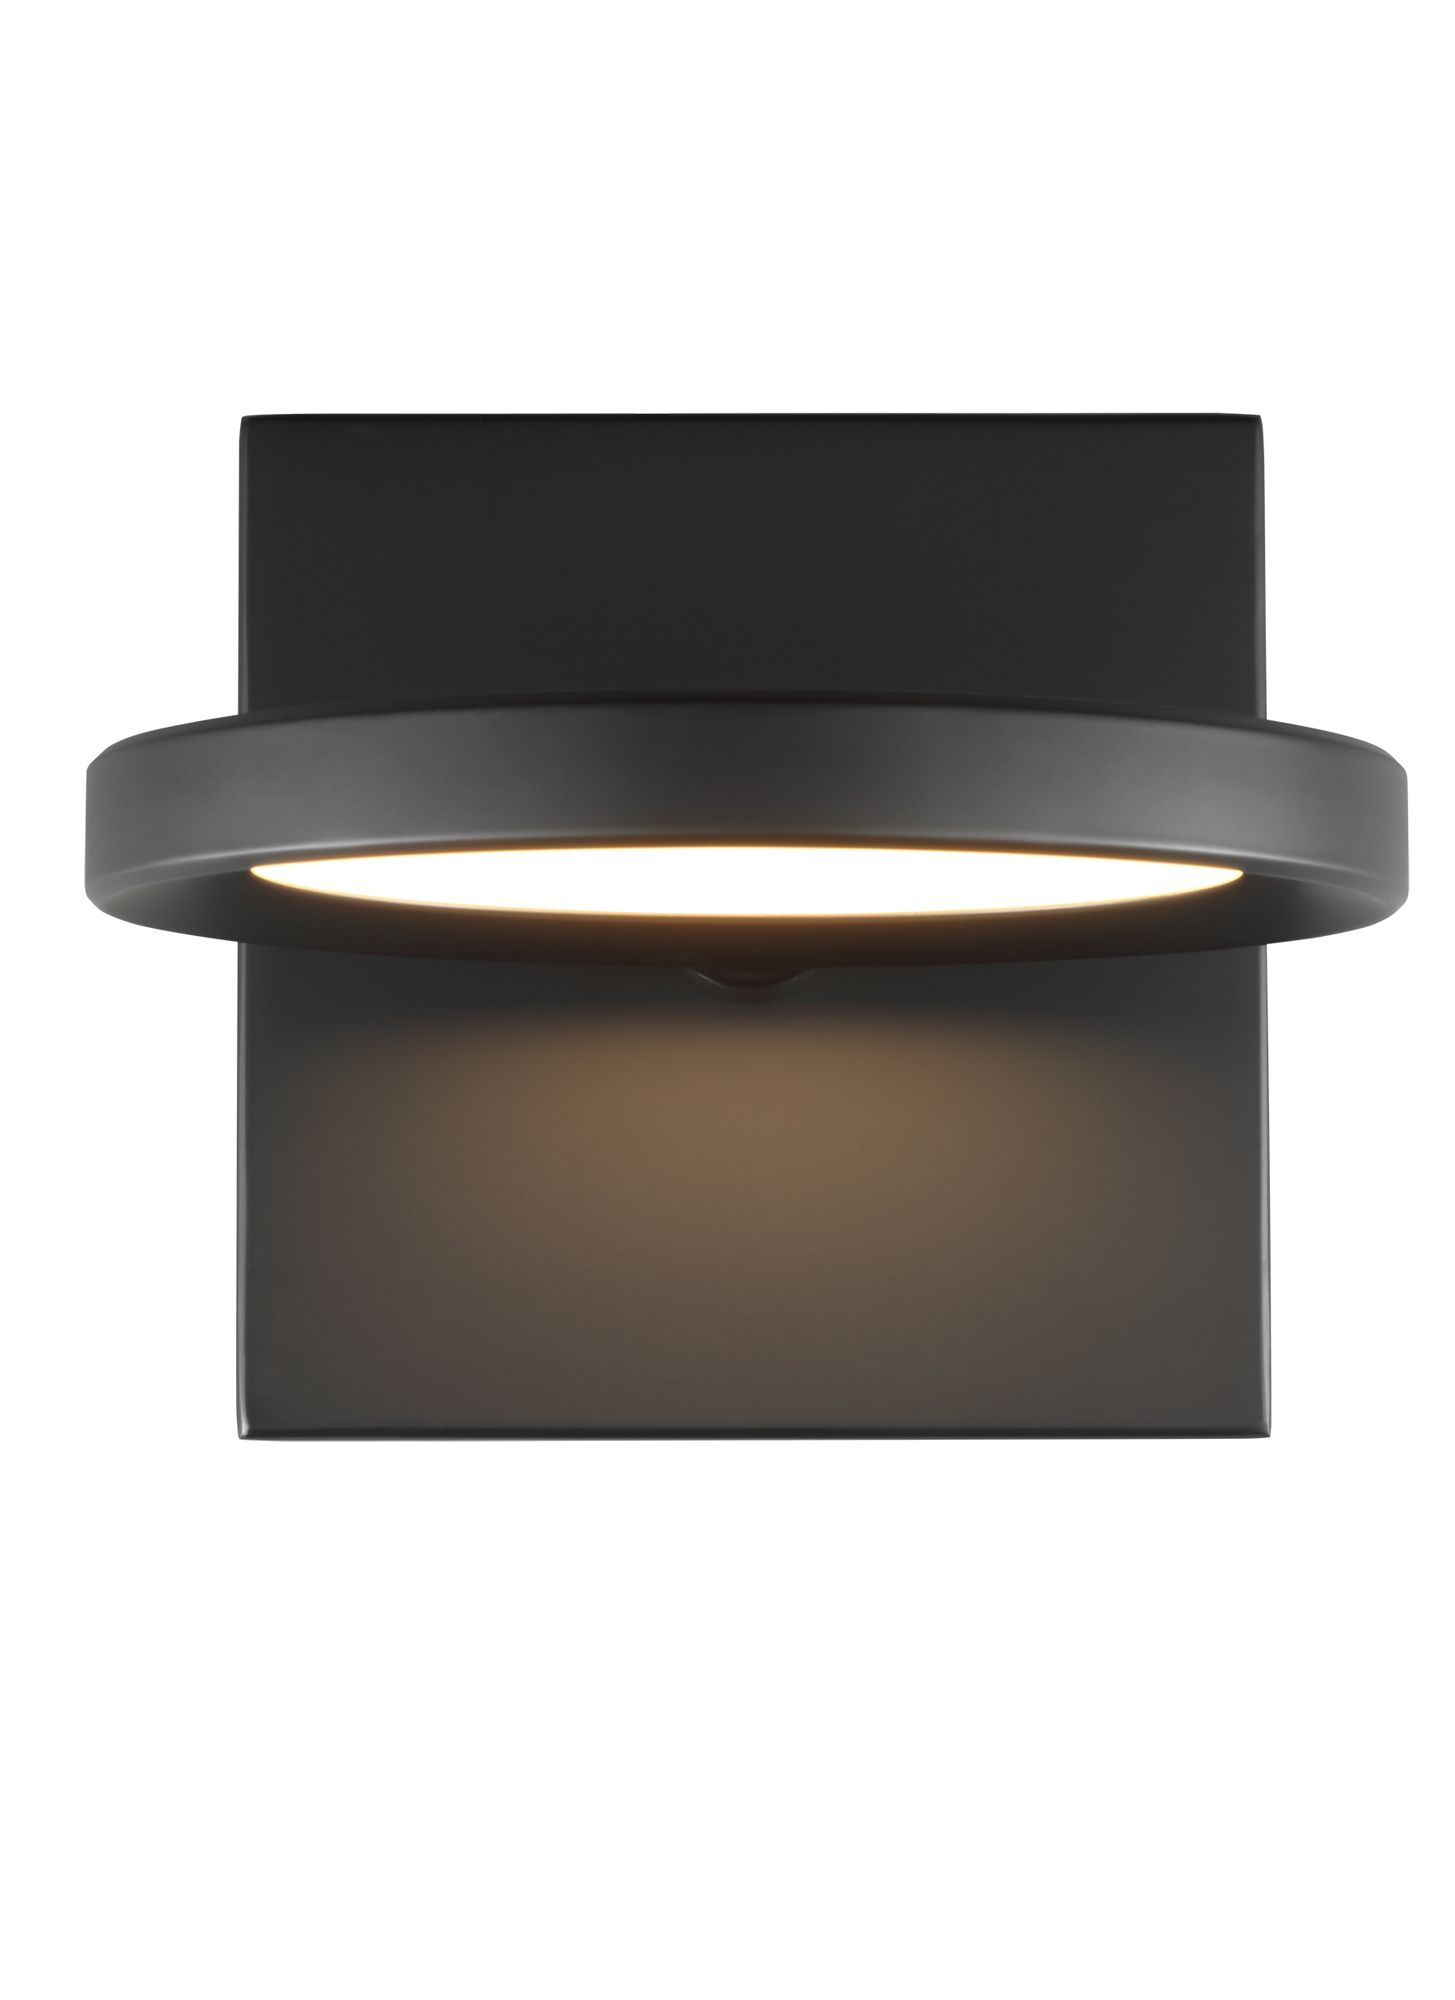 Spectica Wall Light By Tech Lighting 700wsspctg Led930 Wall Lights Tech Lighting Traditional Wall Sconces